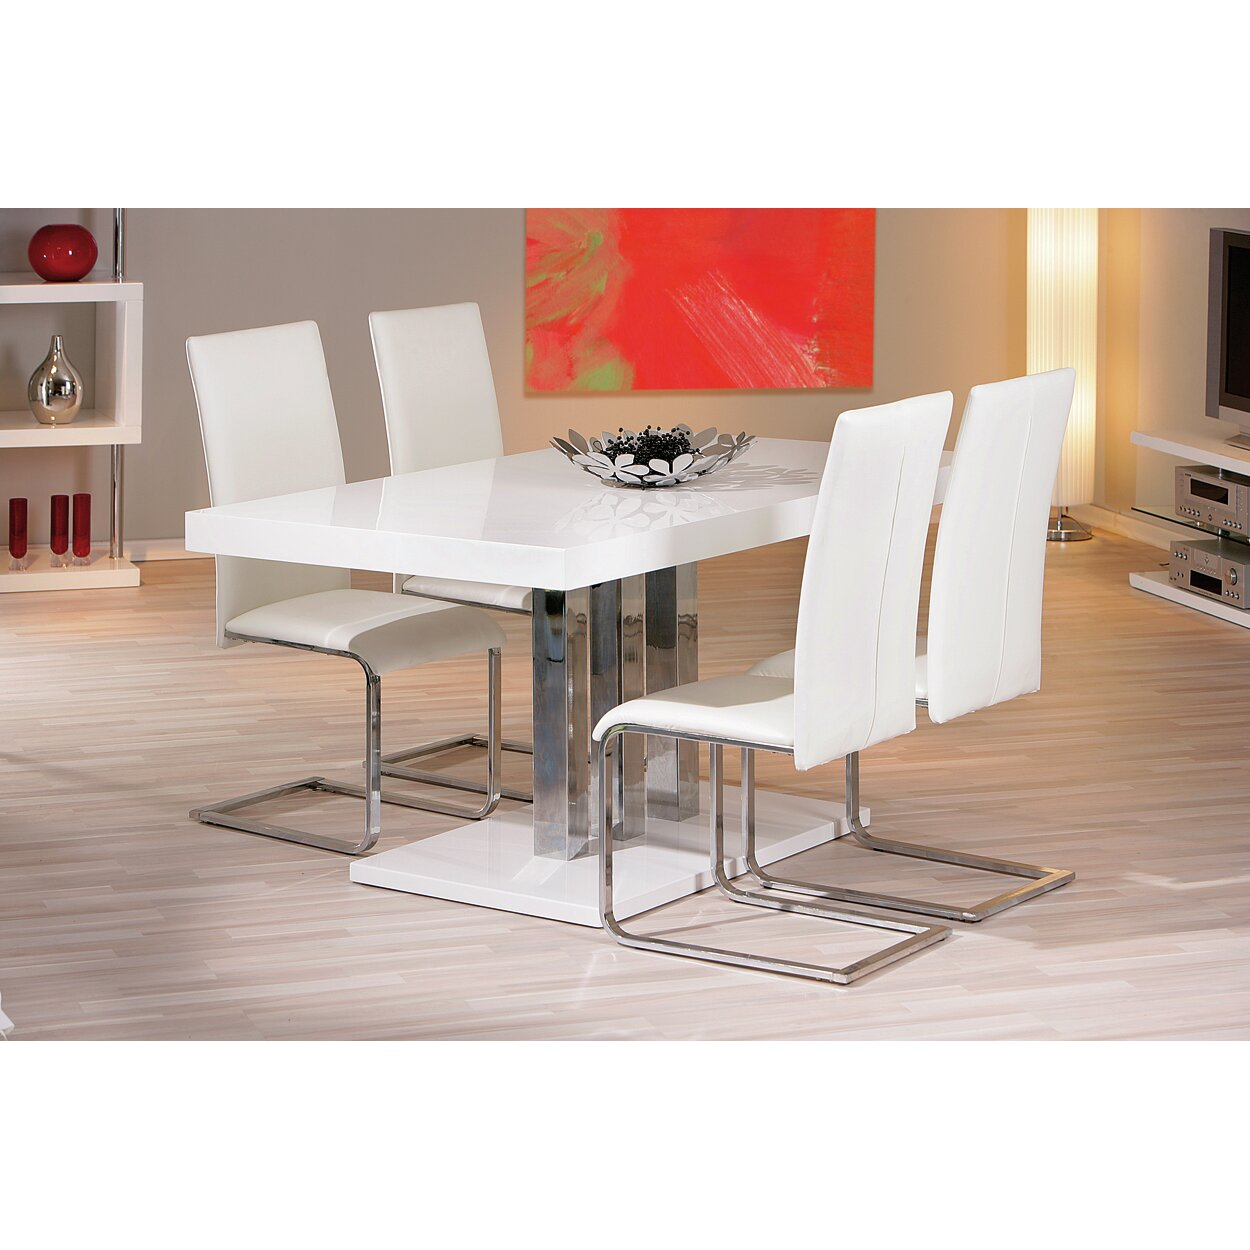 House additions palazzo dining table reviews wayfair uk for Table cuisine blanche